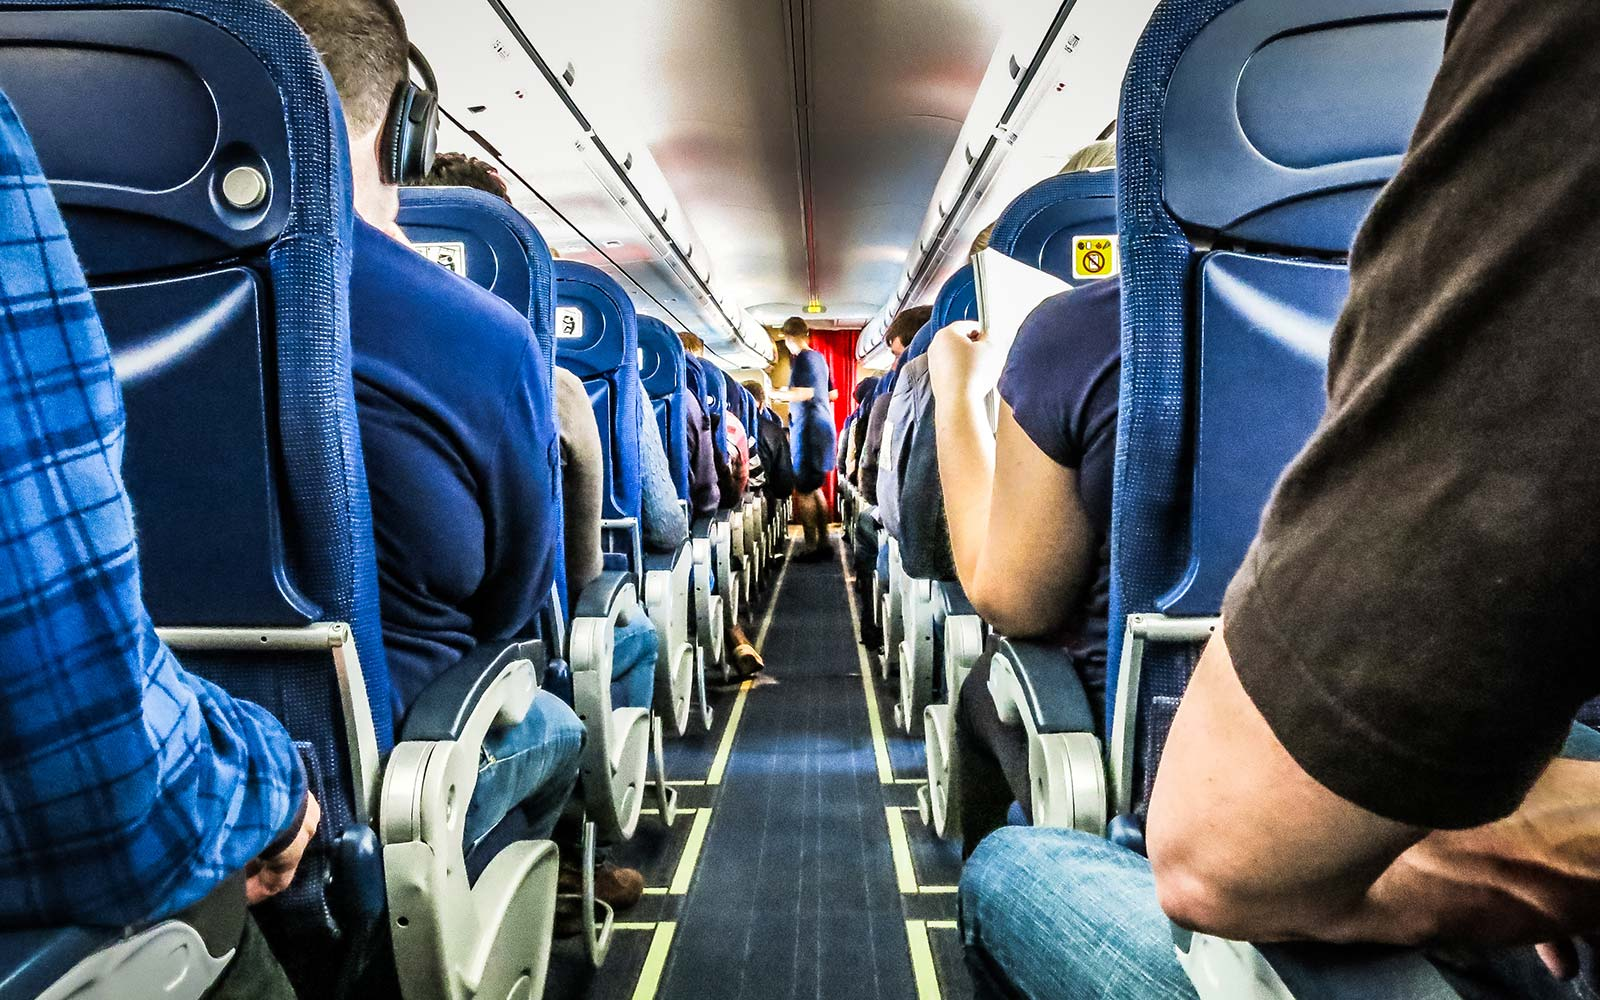 Flying With a Group? Here's How to Make Sure You Sit Together